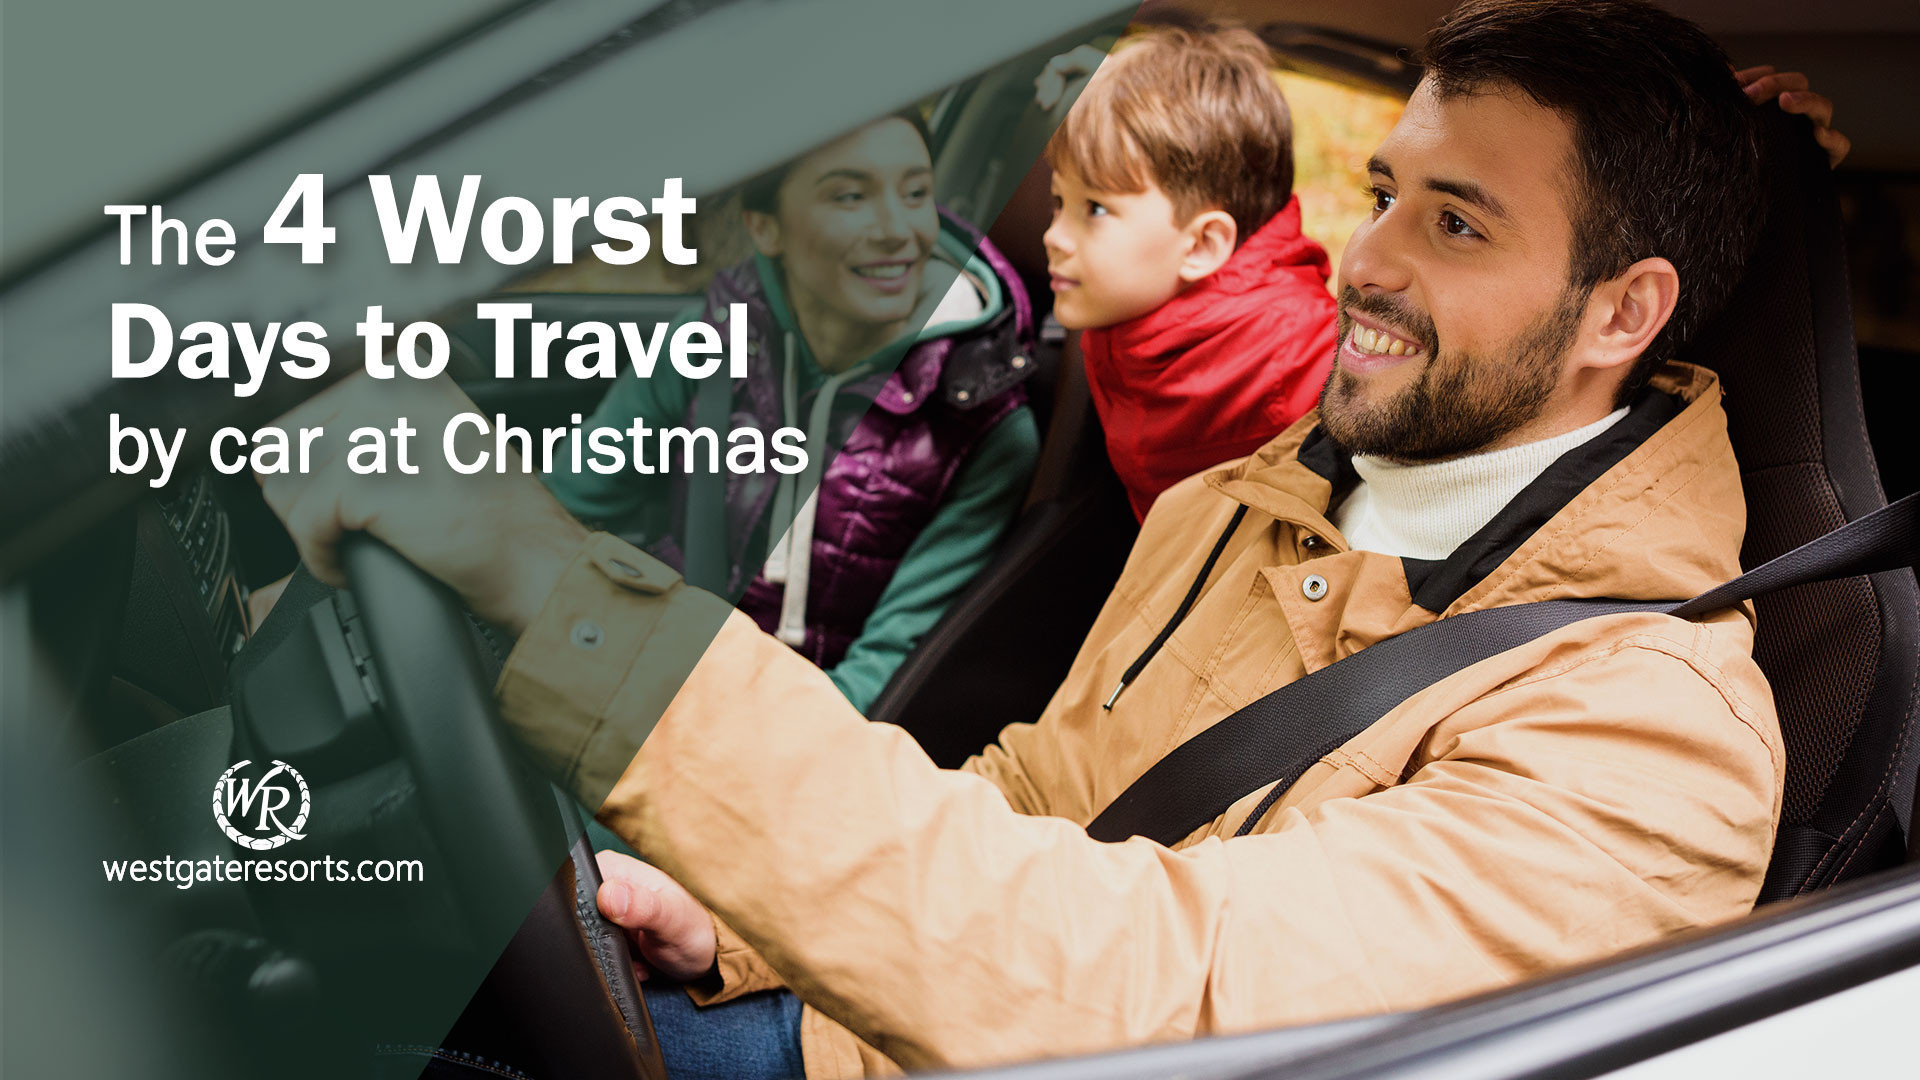 The 4 Worst Days to Travel by Car at Christmas | Holiday Travel Tips | Westgate Resorts